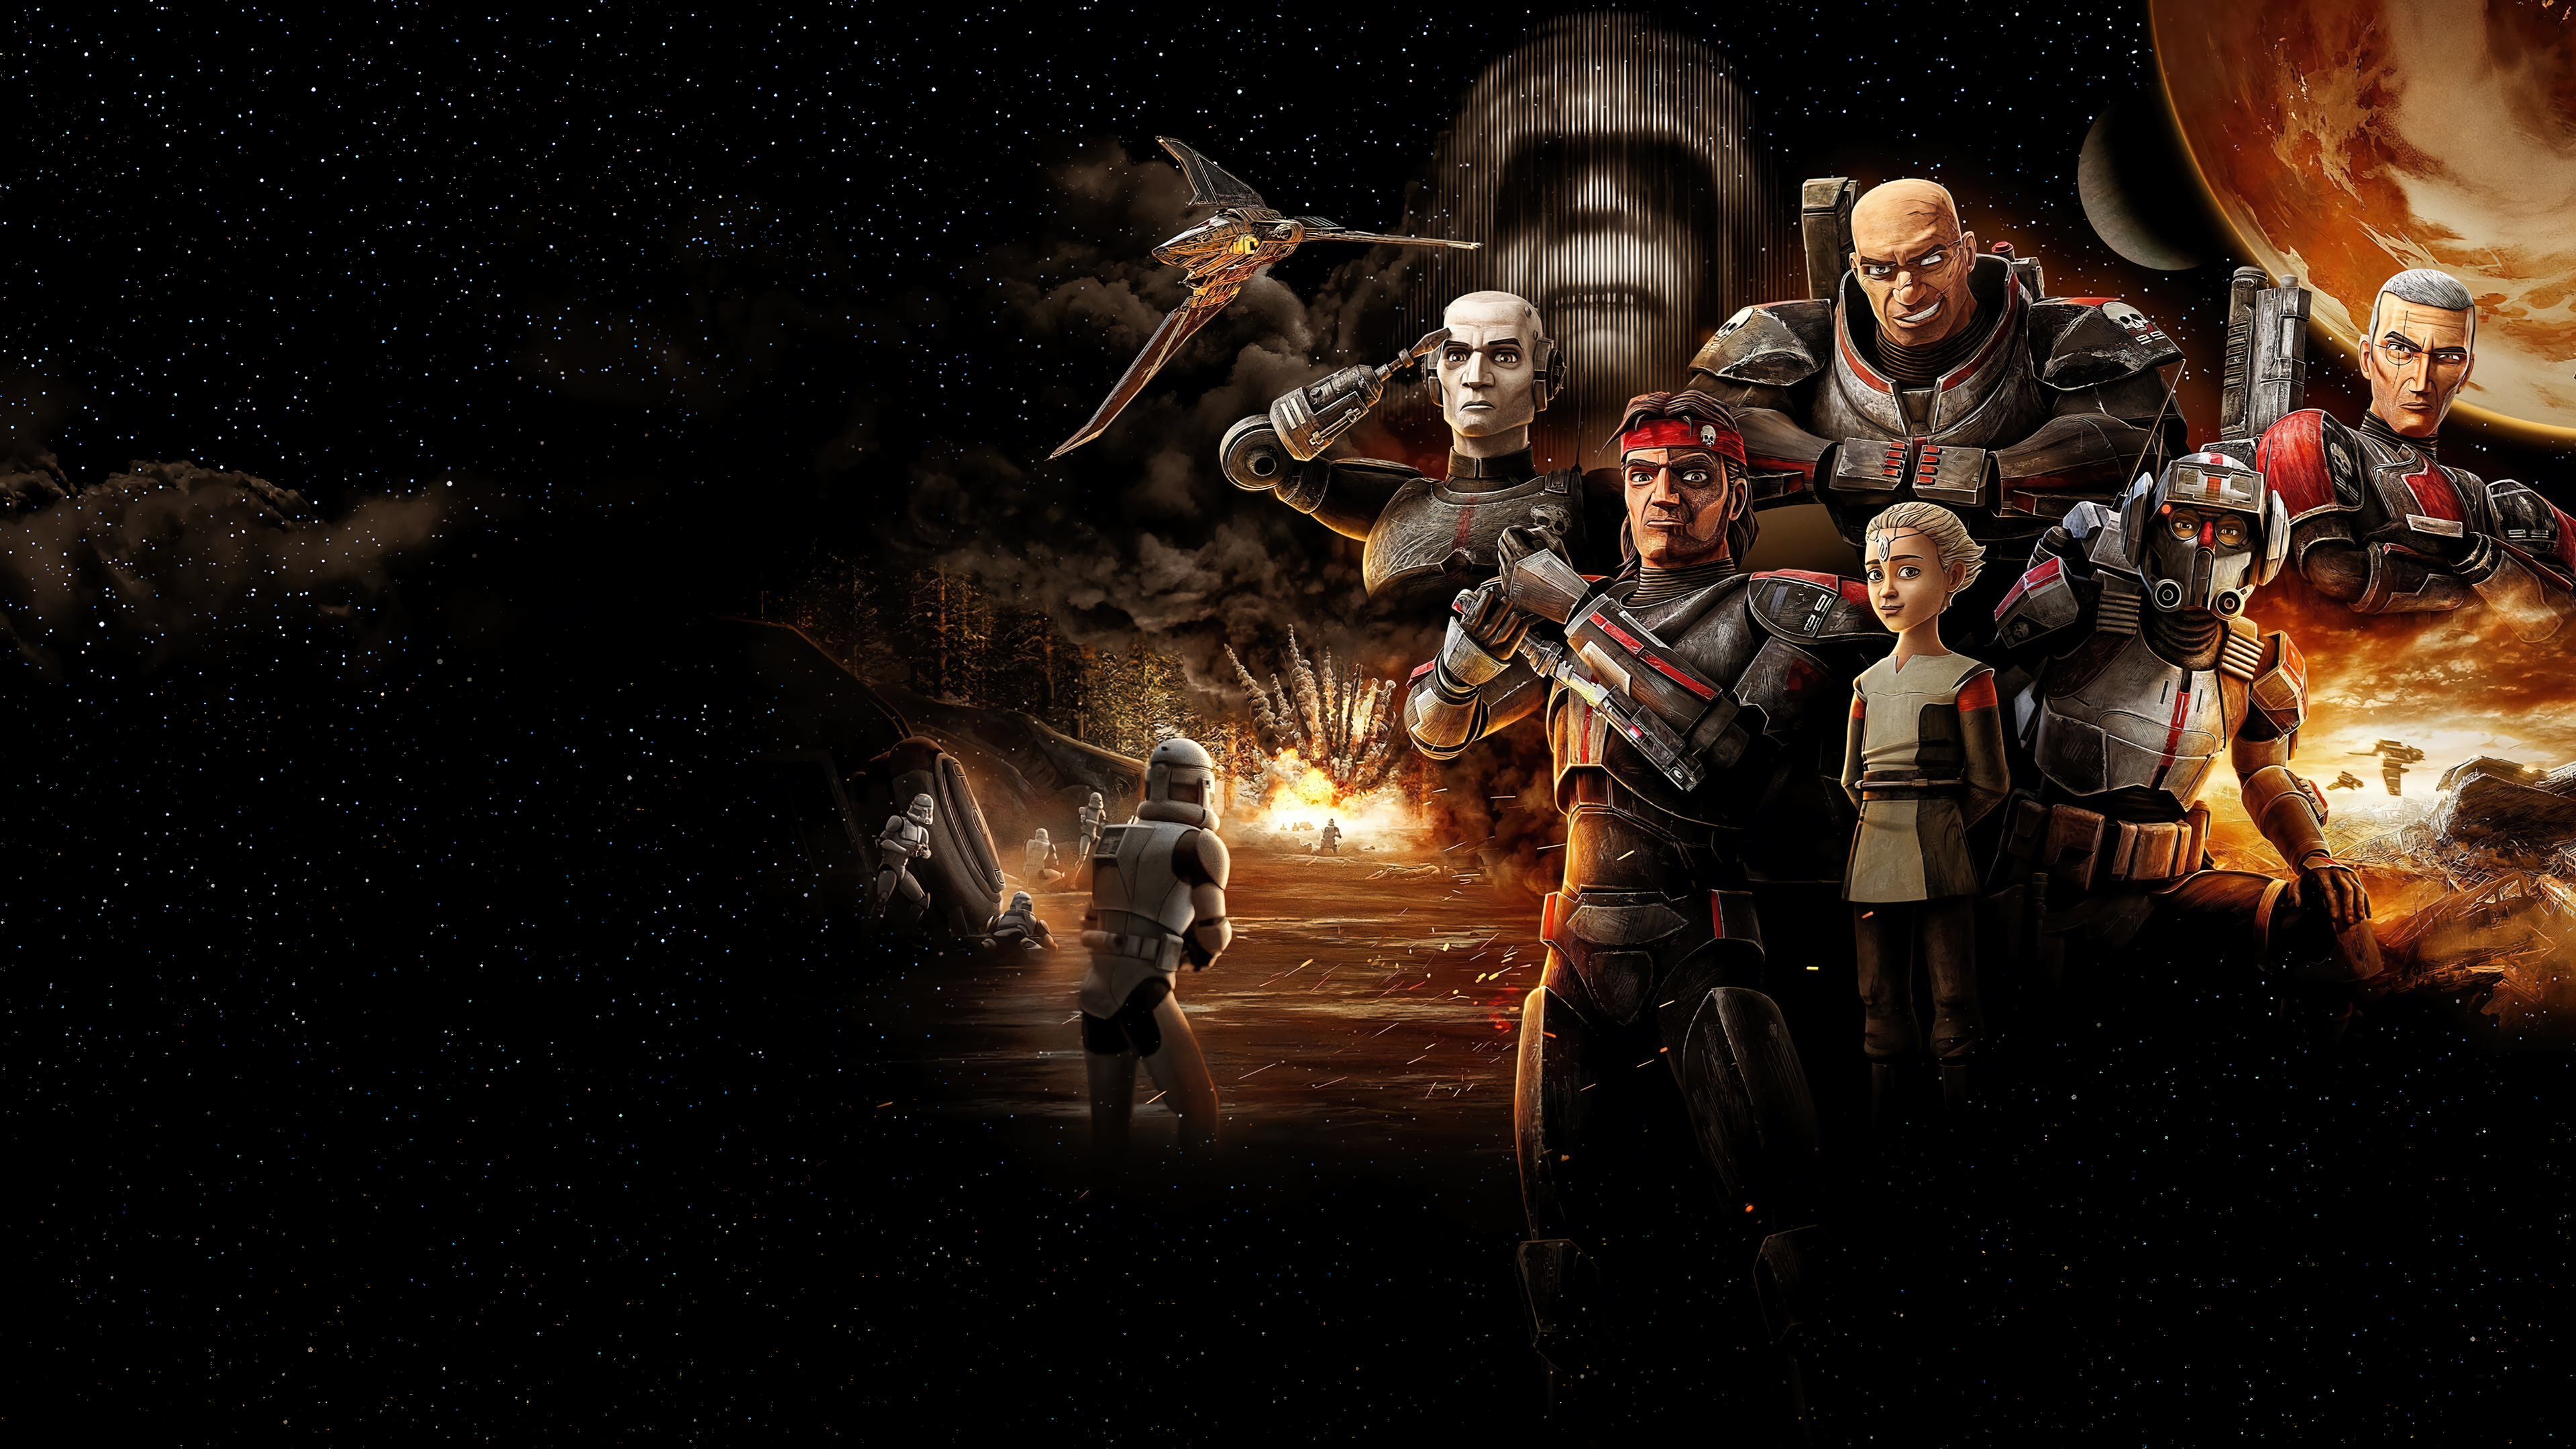 Wallpaper Star Wars The Bad Batch Characters